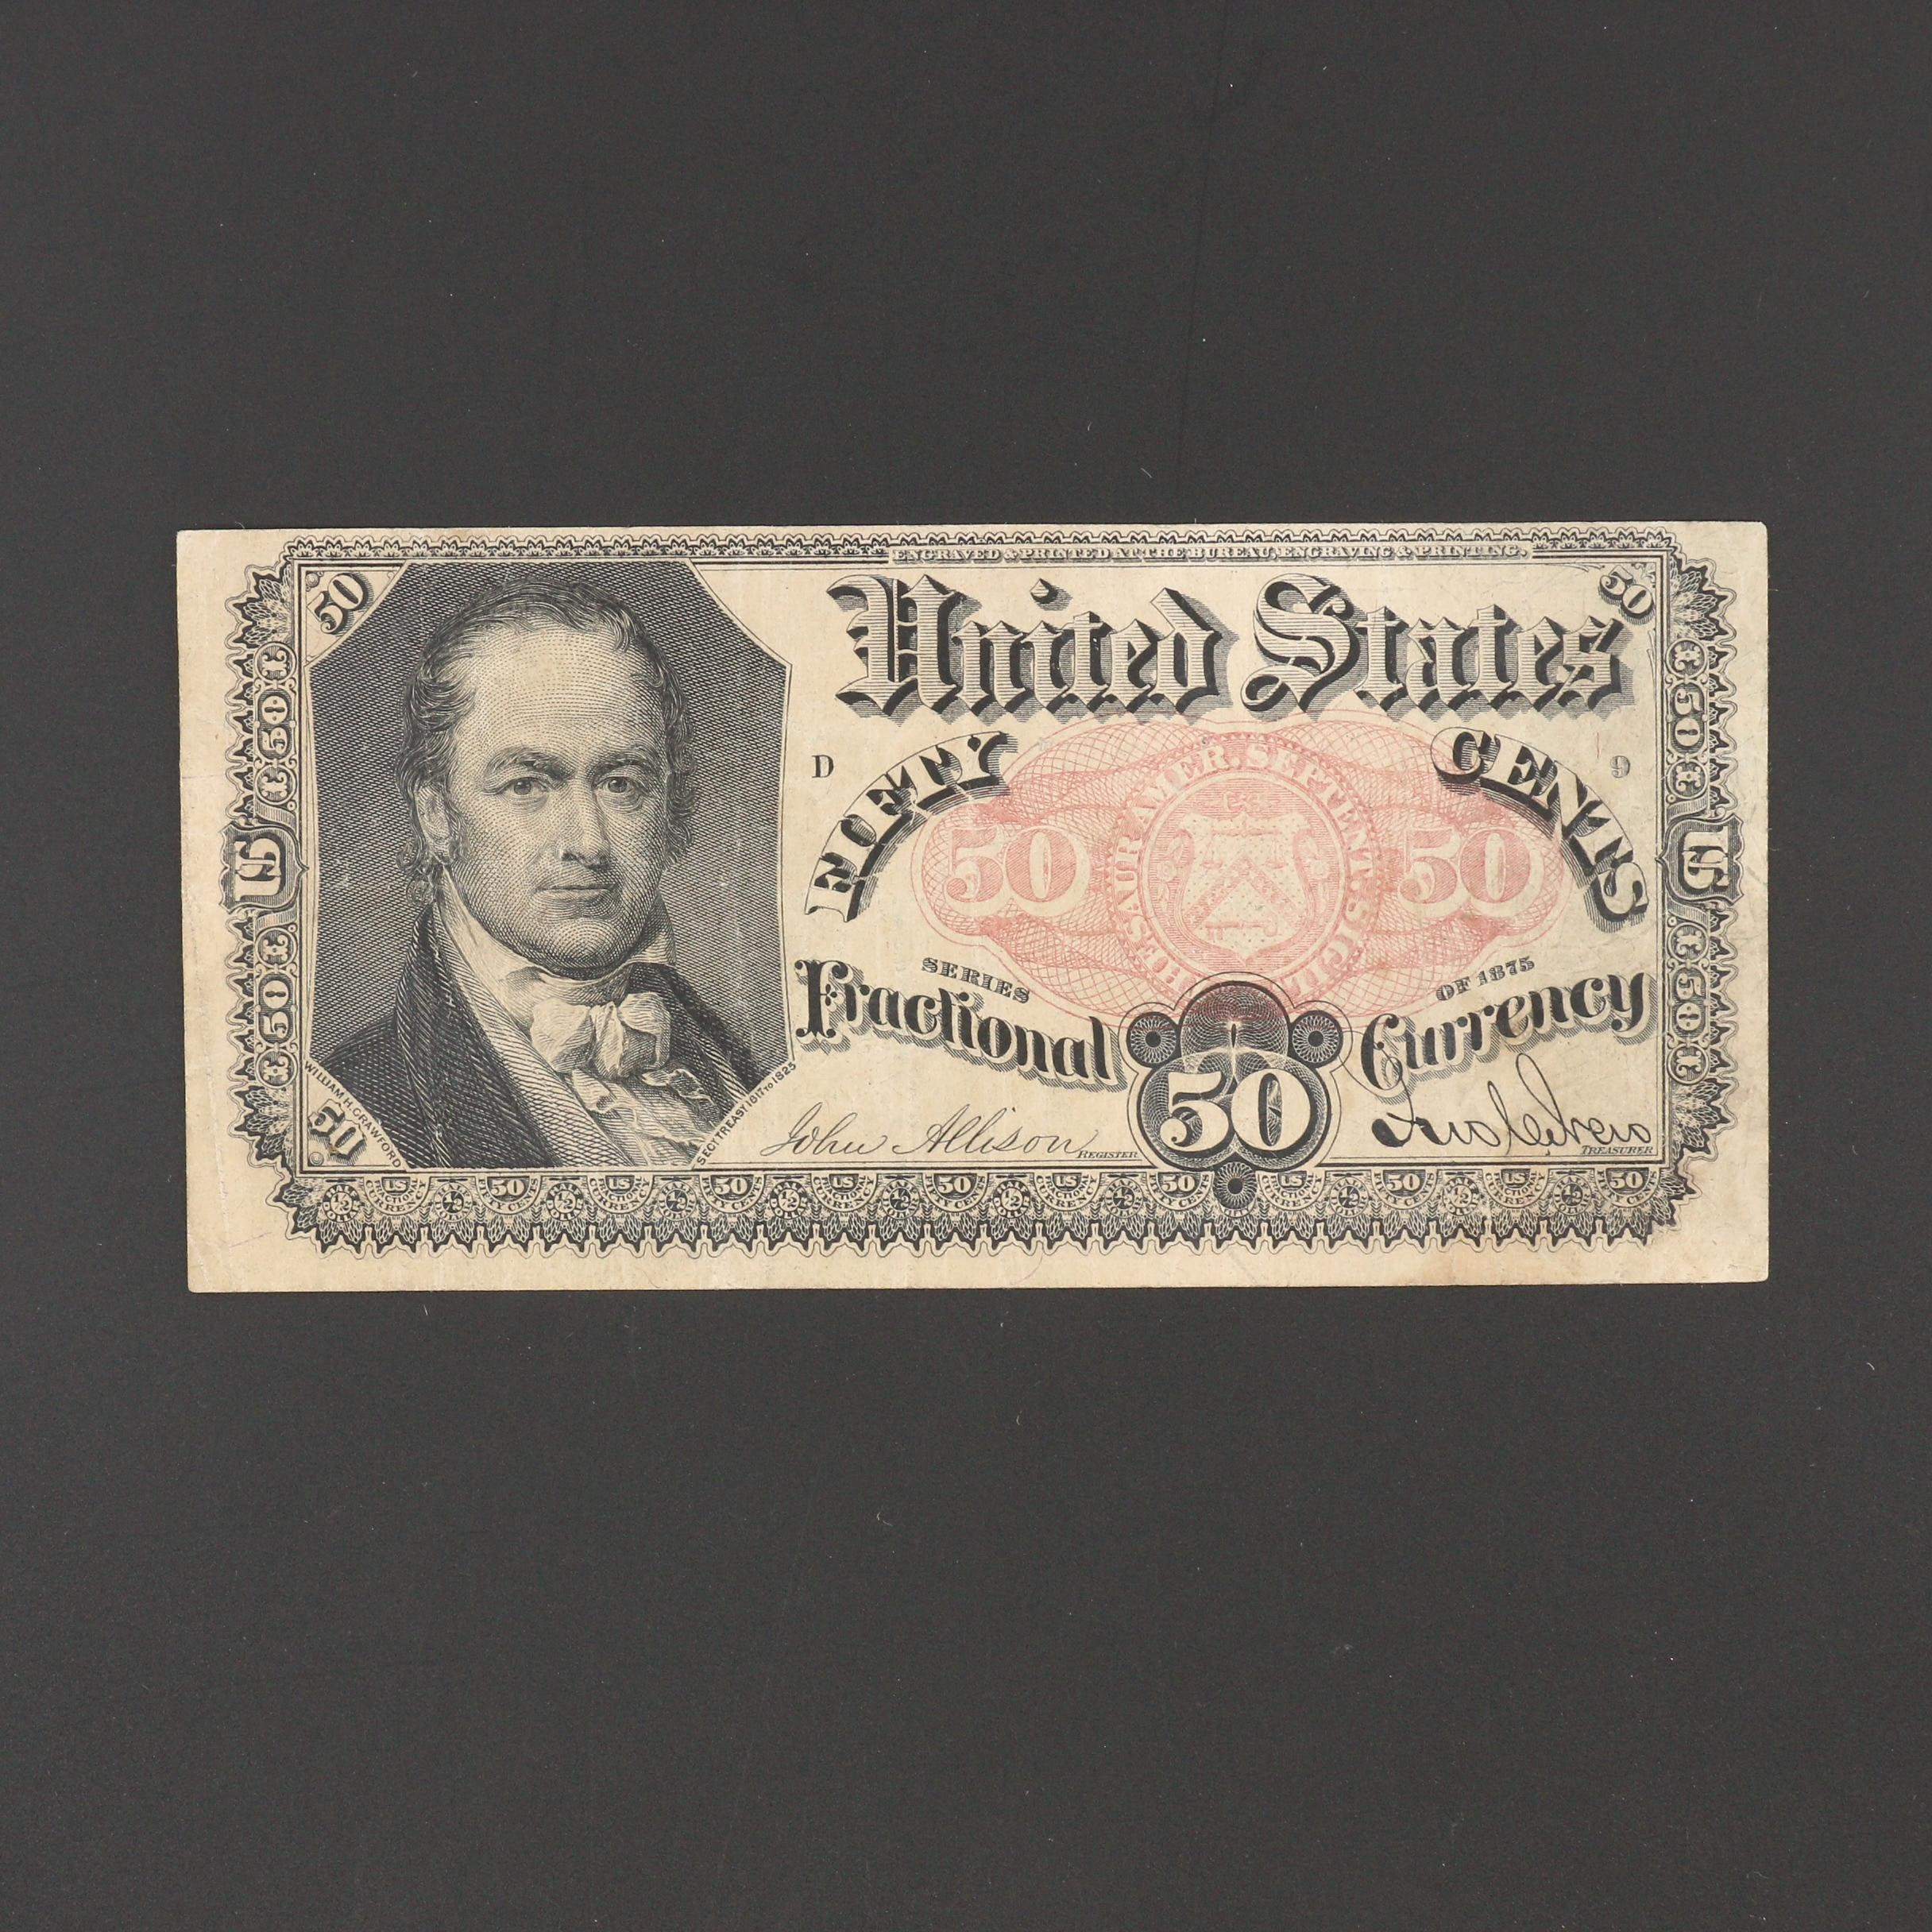 Fifth Issue 50-Cent Fractional Currency Note From 1875